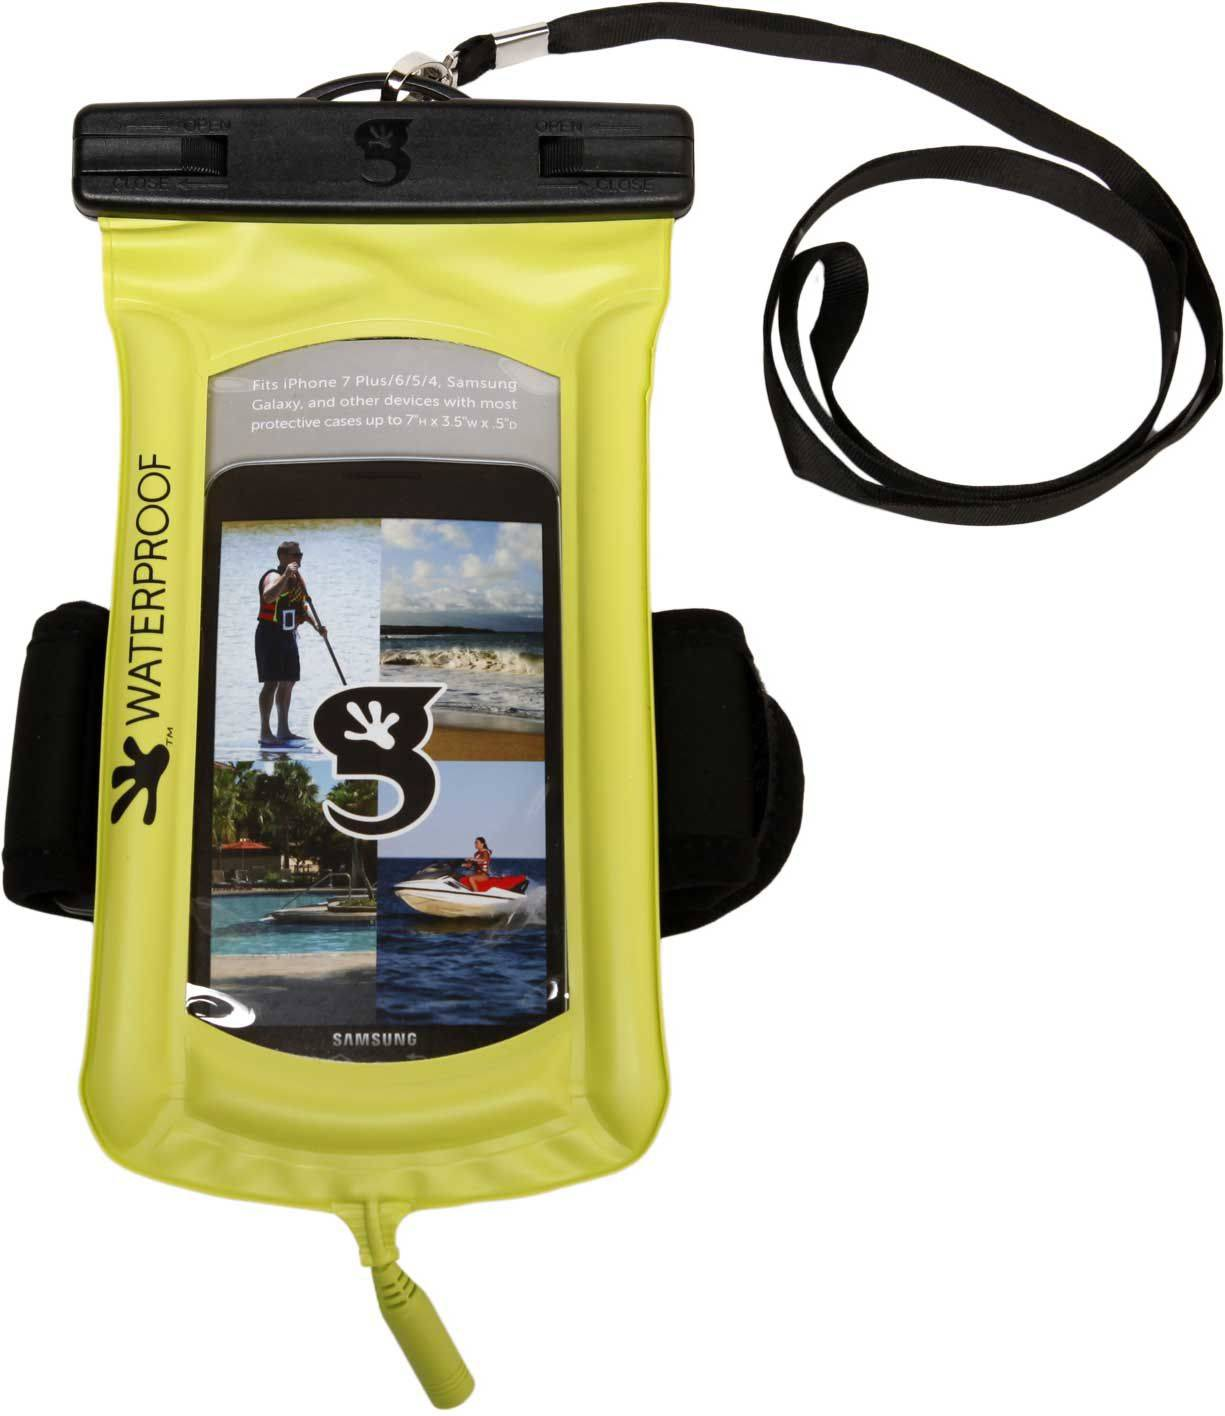 geckobrands Floatable Waterproof Phone Case with Audio Cord and Arm Band, Green